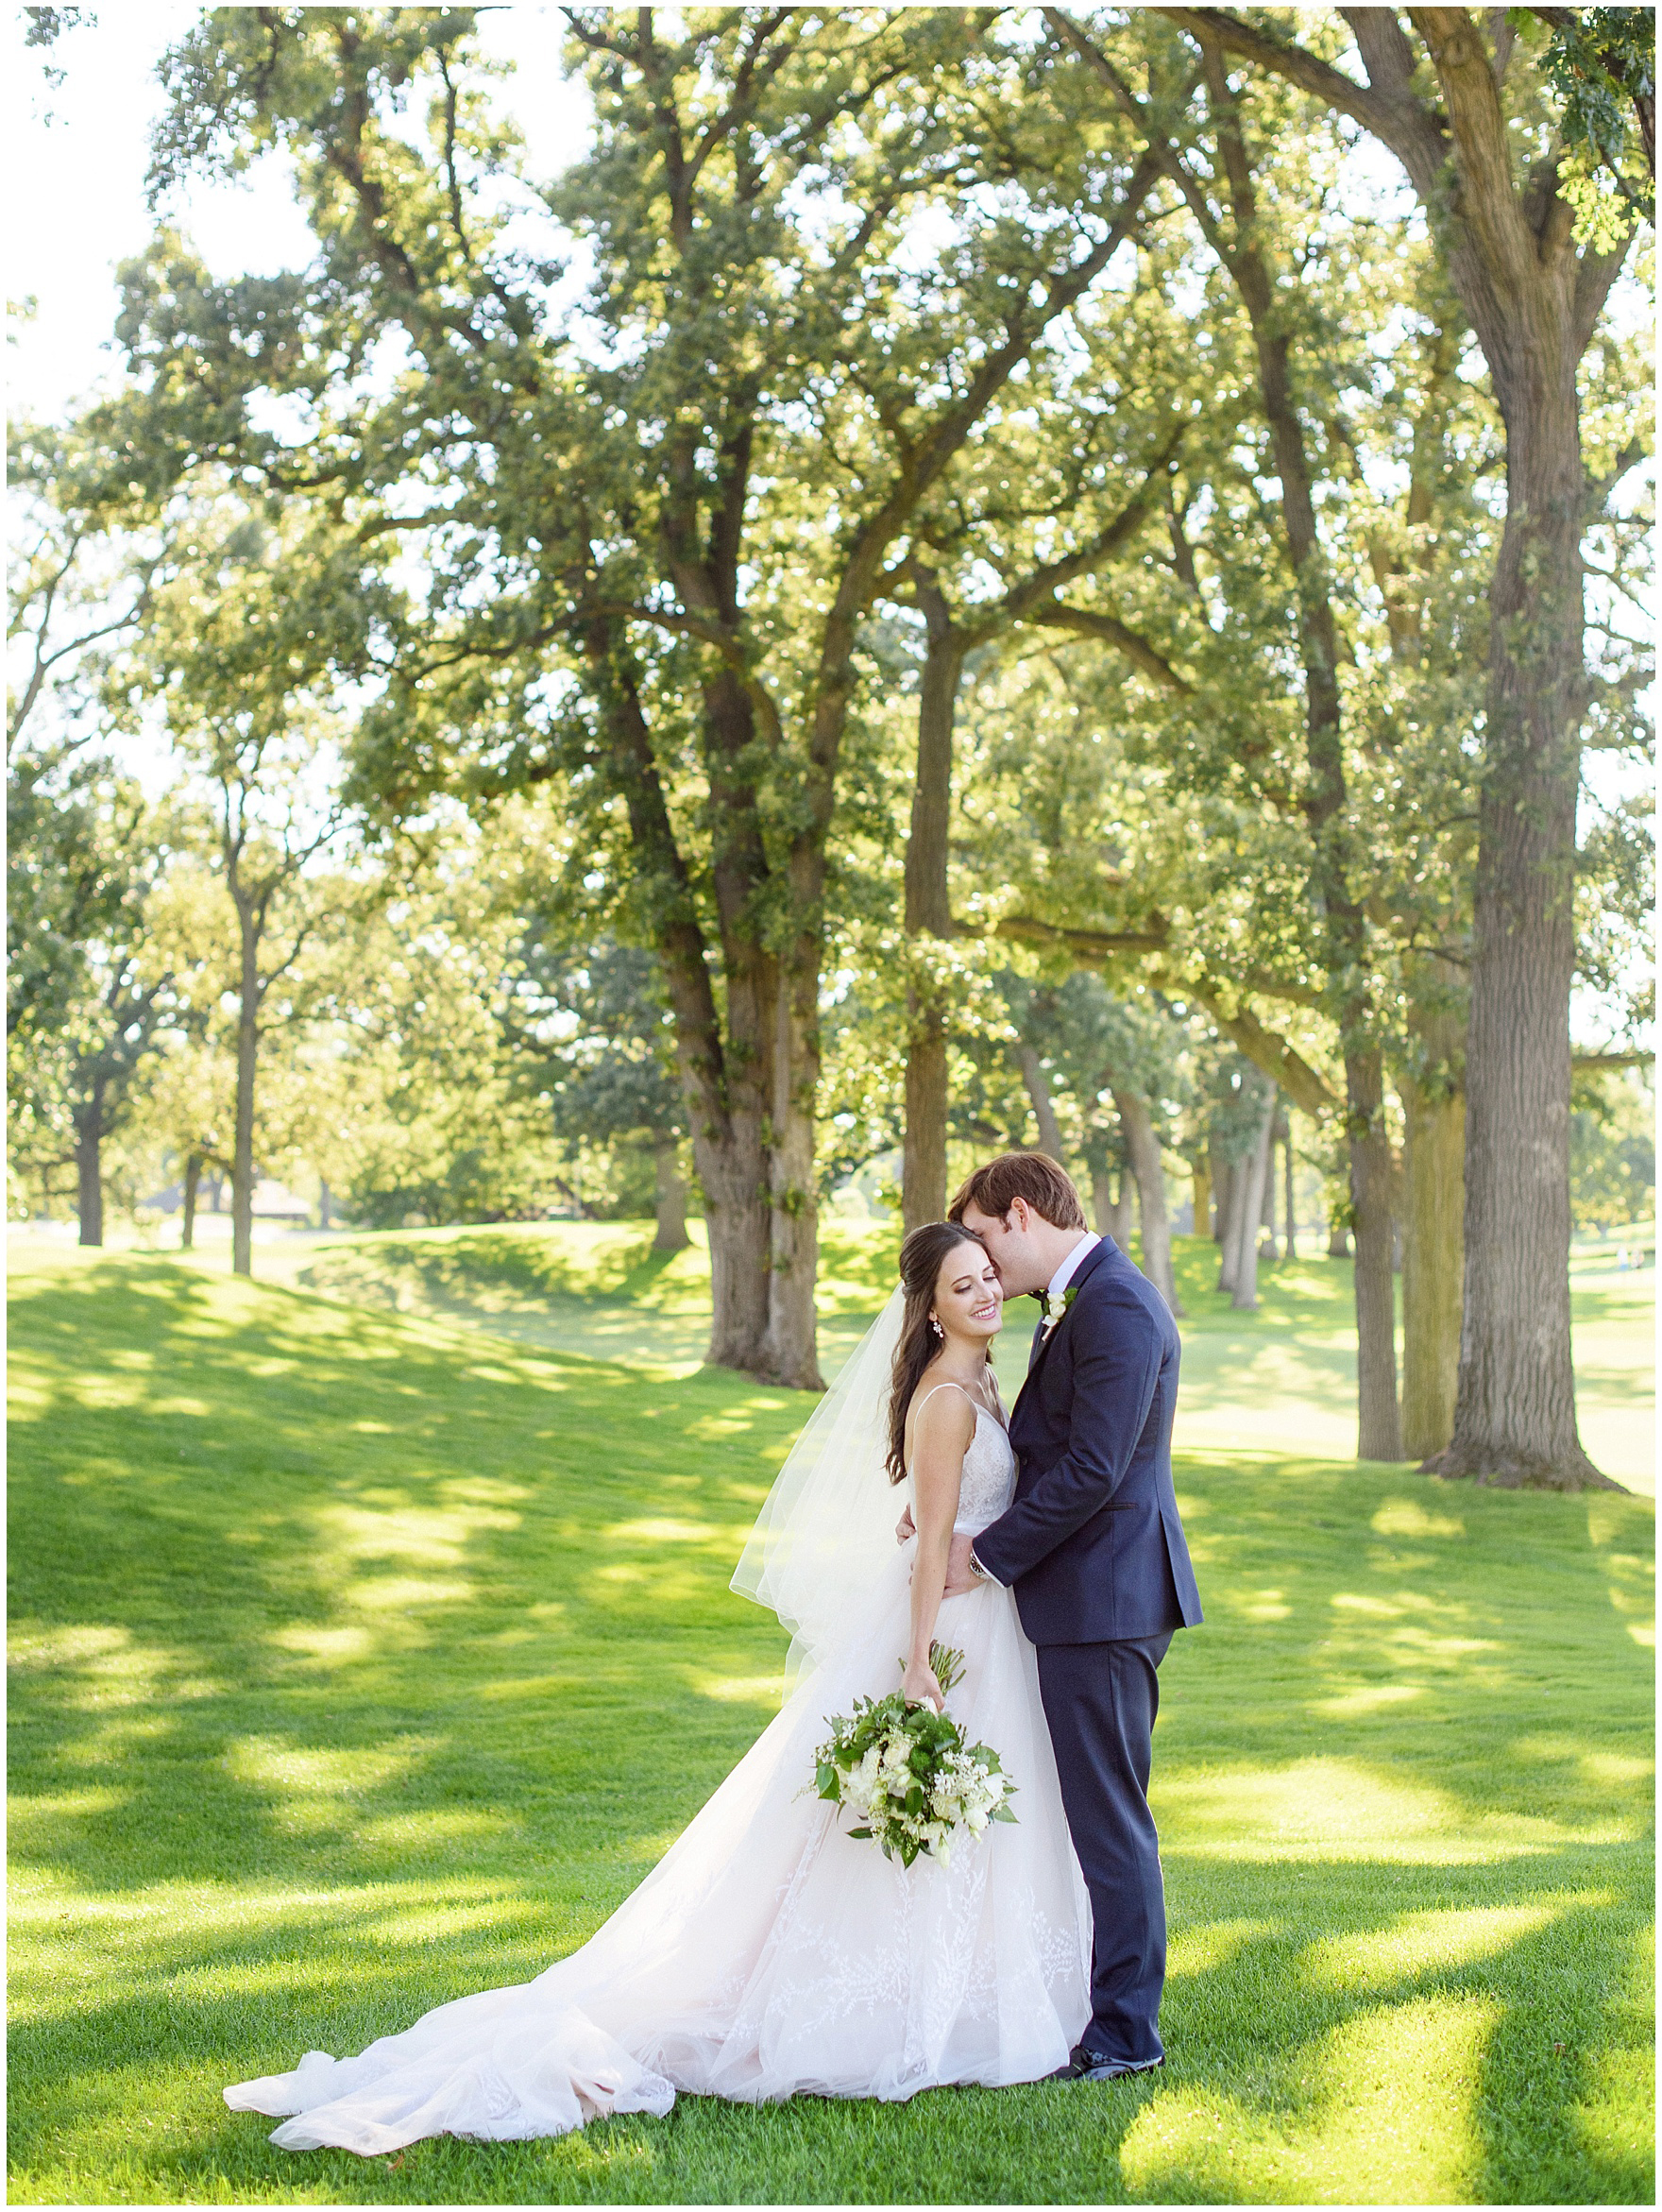 The bride and groom smile for portraits during a Butterfield Country Club wedding.